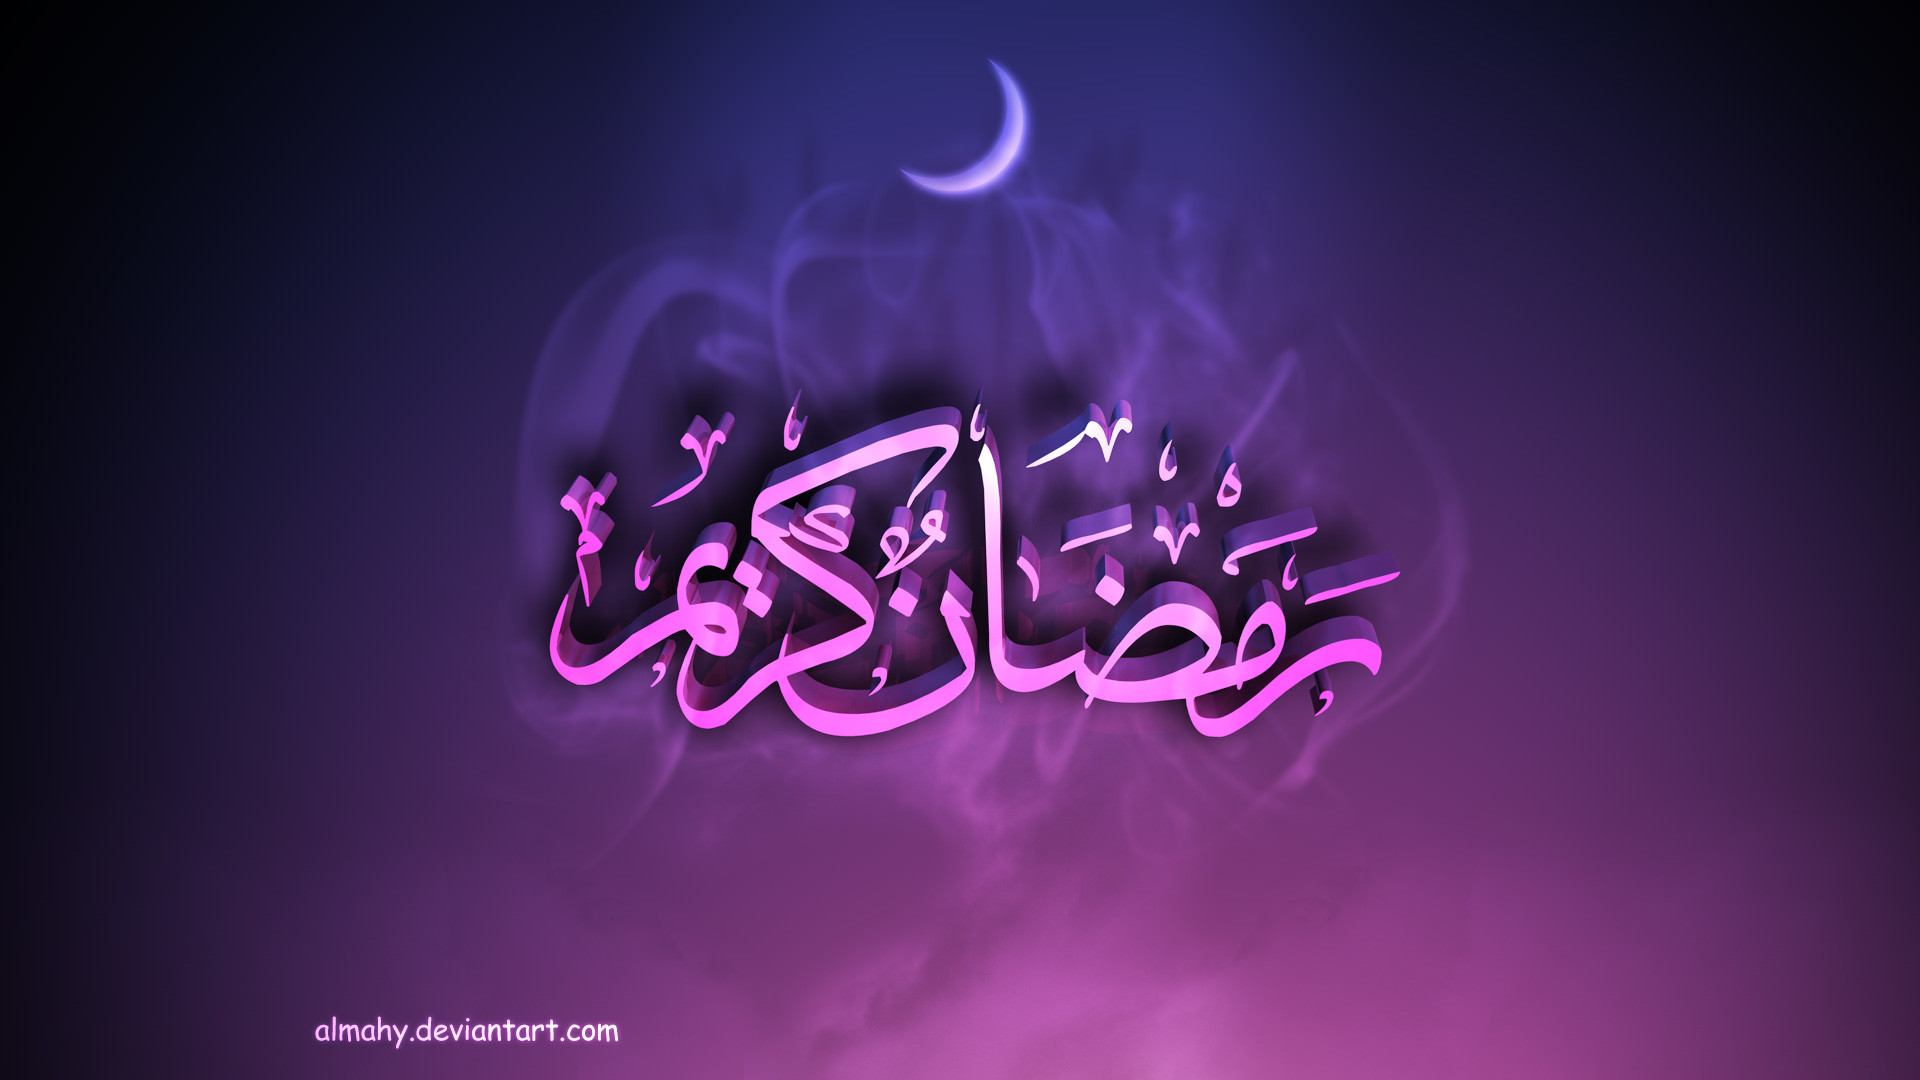 1920x1080 ramadan wallpapers 2014 #arabic #ramadan http://www.a3da.net